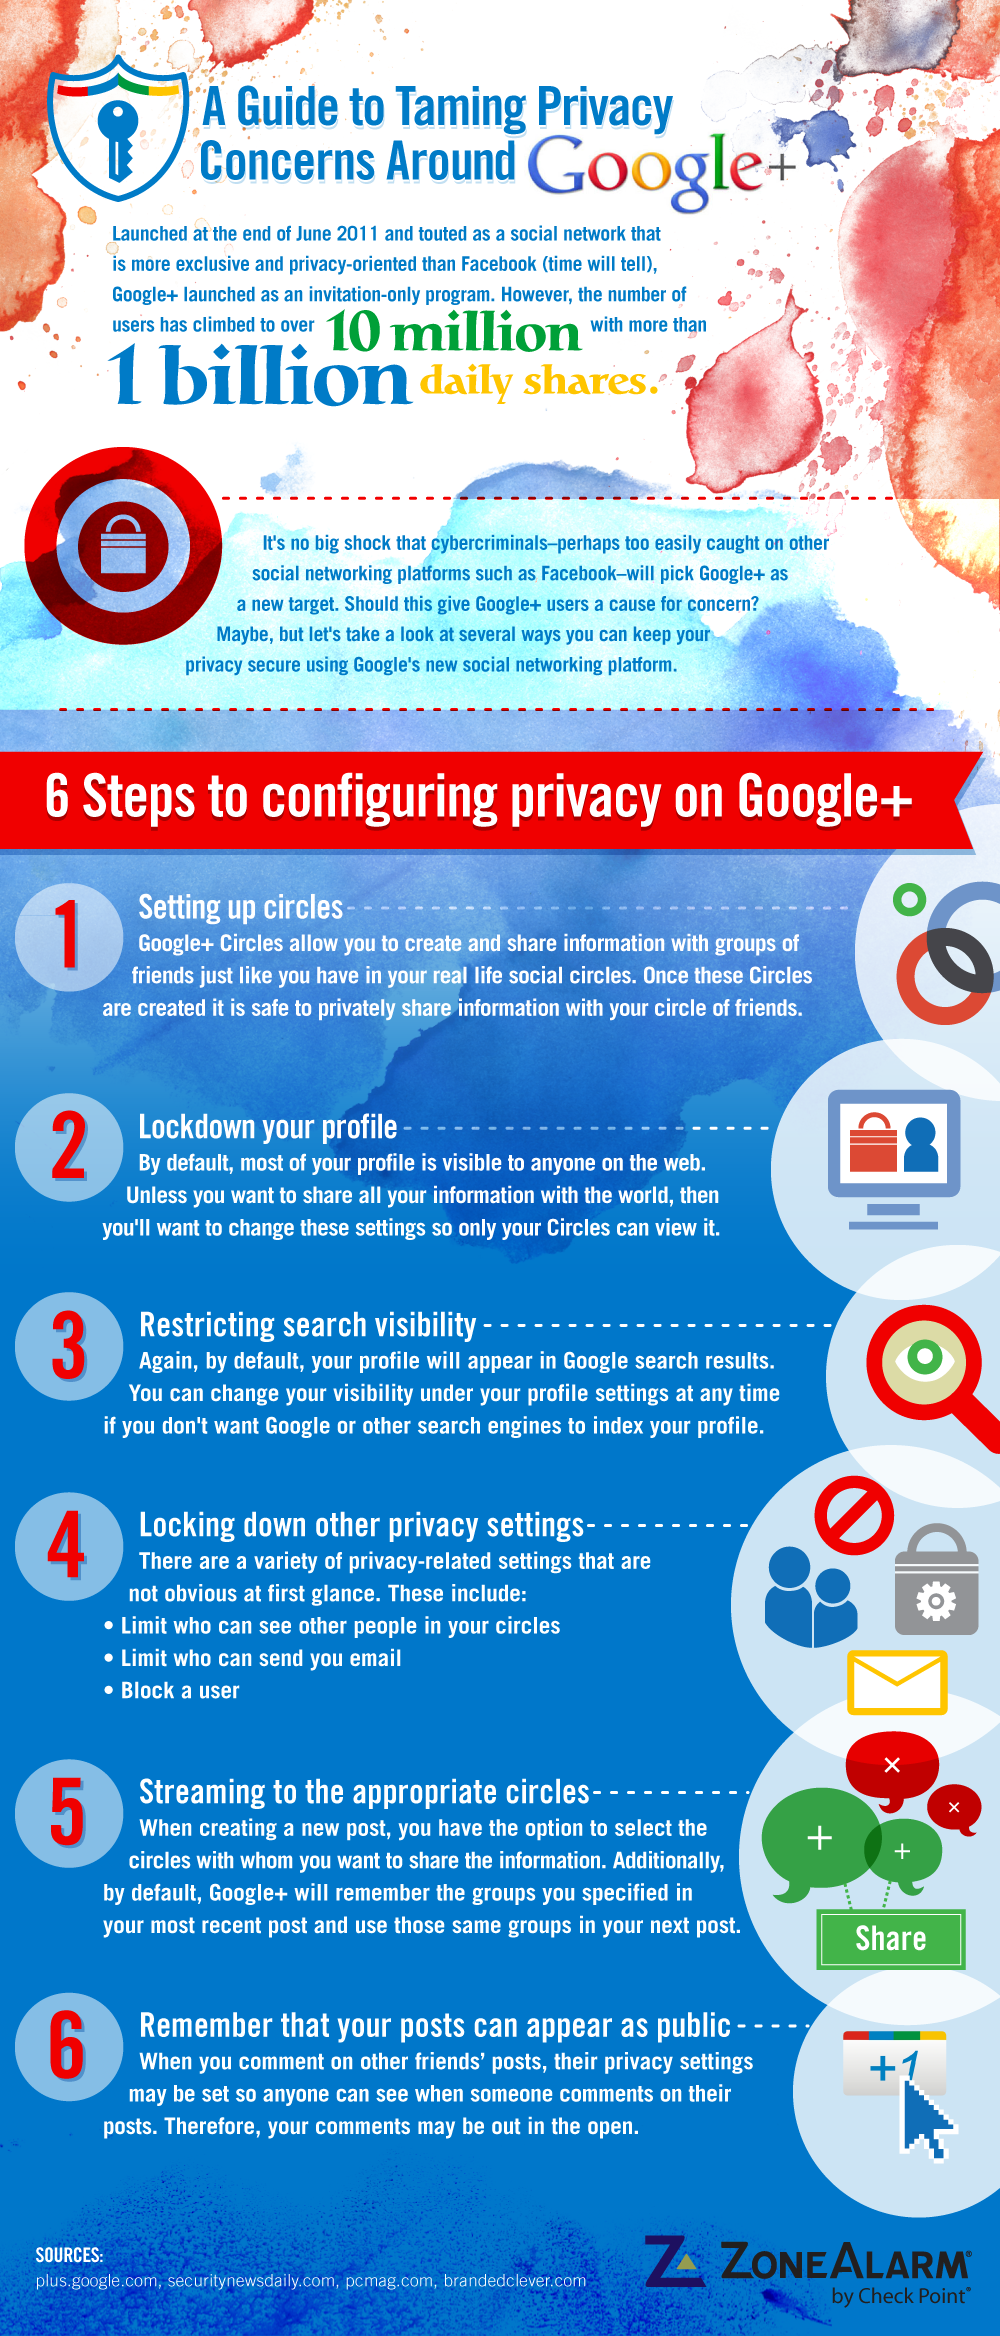 A Guide to Taming Privacy Concerns Around Google+